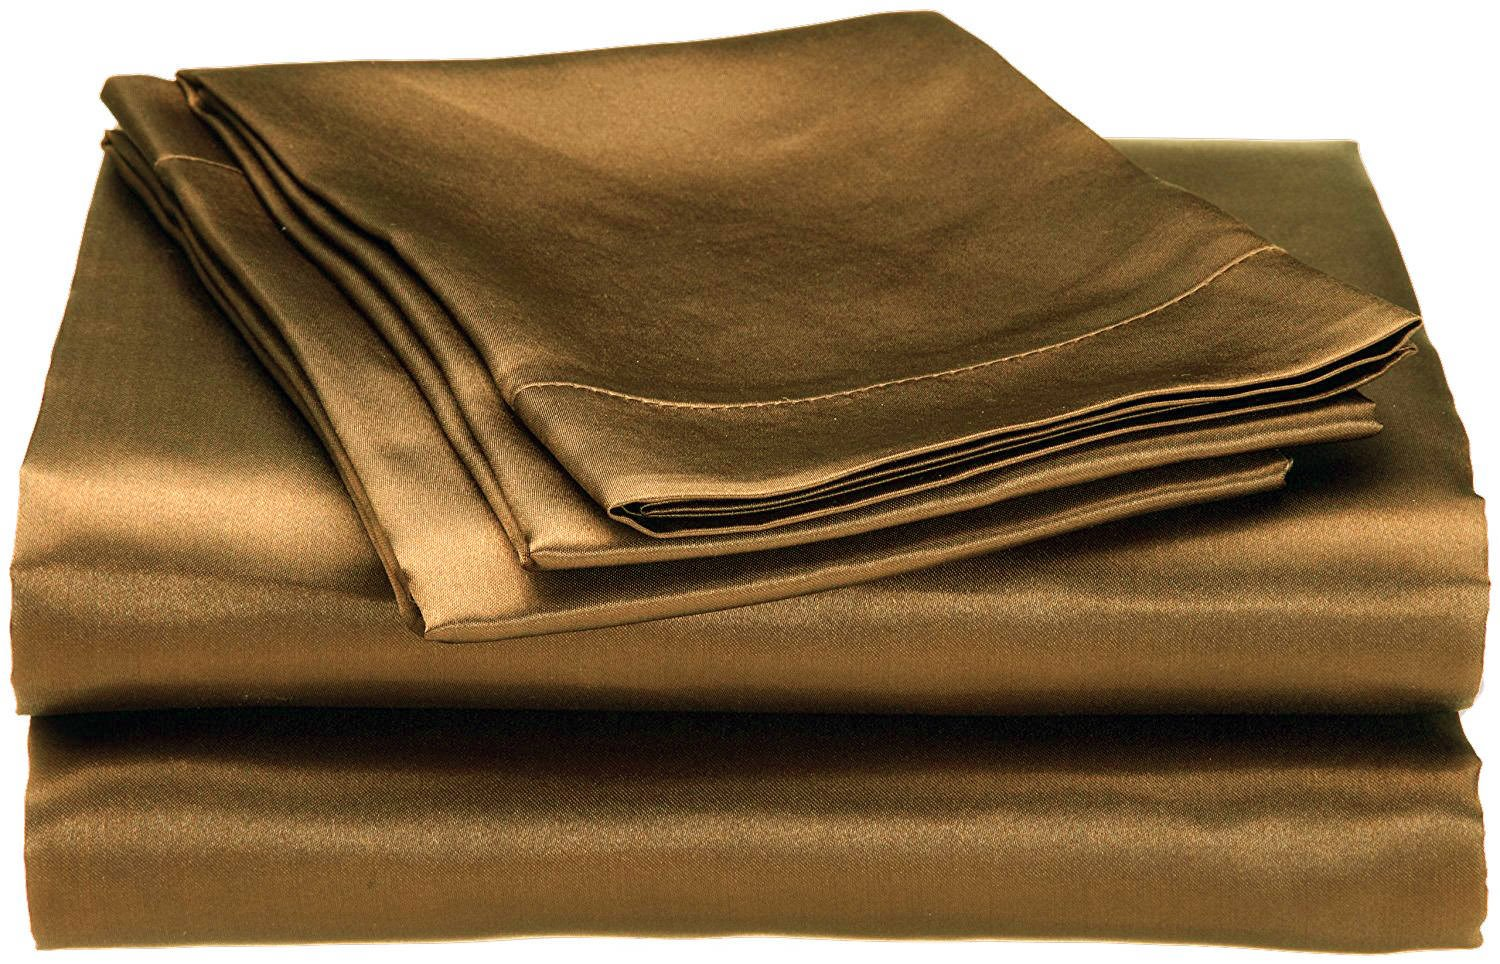 Cloud Fino Hotel Quality Silky Soft Luxurious Satin 4 Pc Sheet Set Wrinkle & Fade Resistant , Hypoallergenic Breathable Durable Comfort Bedding Set !!! Queen, Brown